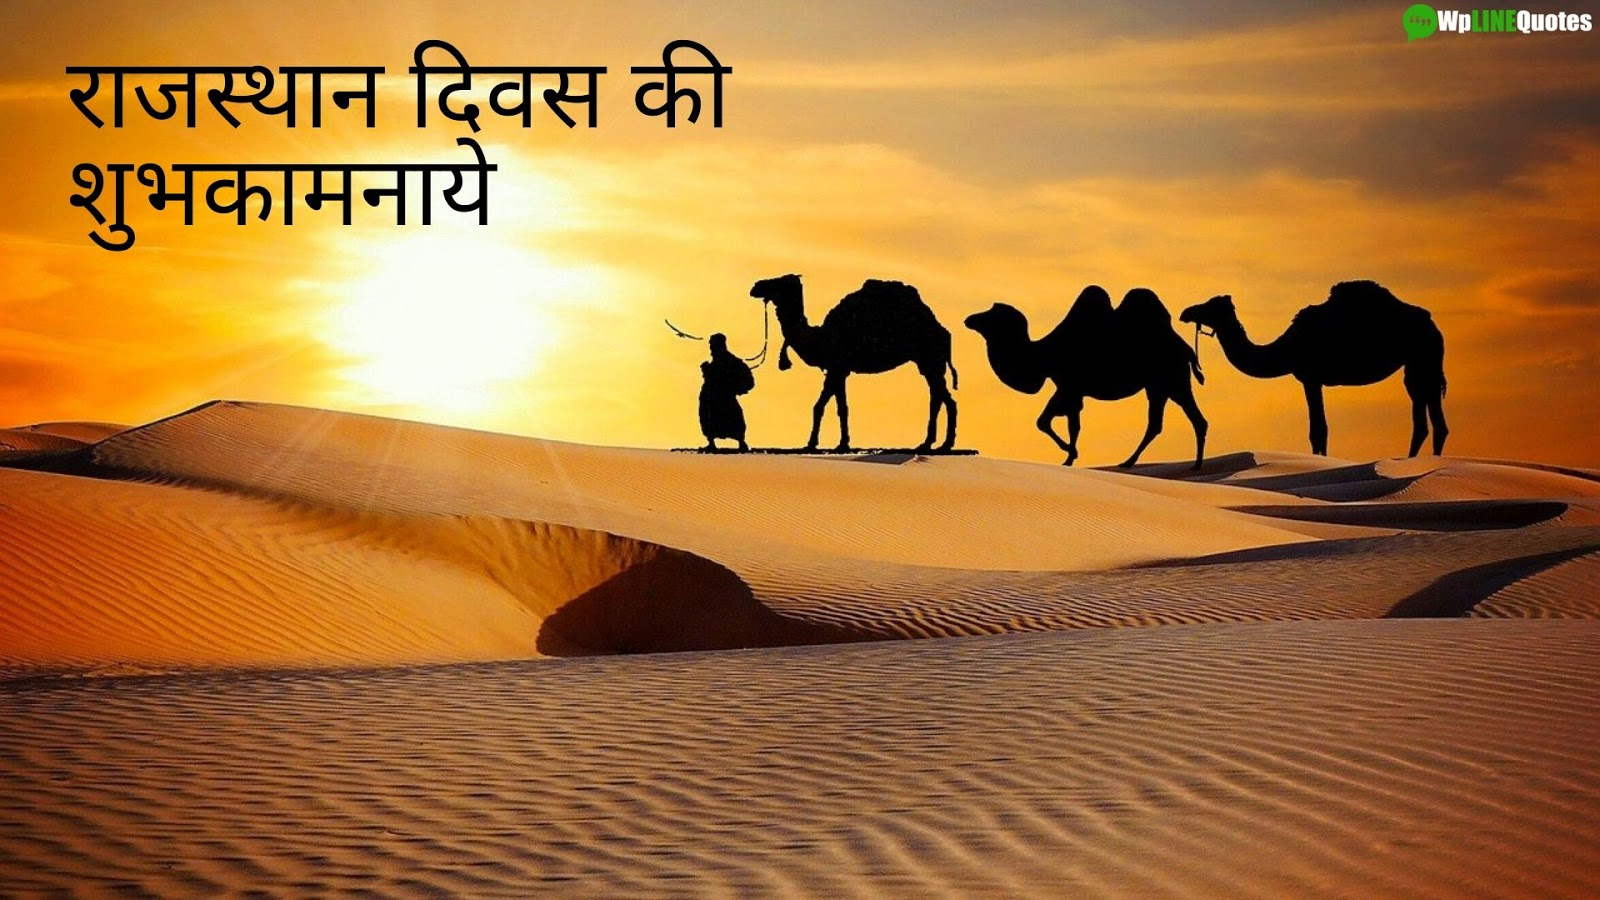 Happy Rajasthan Diwas Quotes, Wishes, Messages, SMS, Images, Poster For Whatsapp Status & Facebook